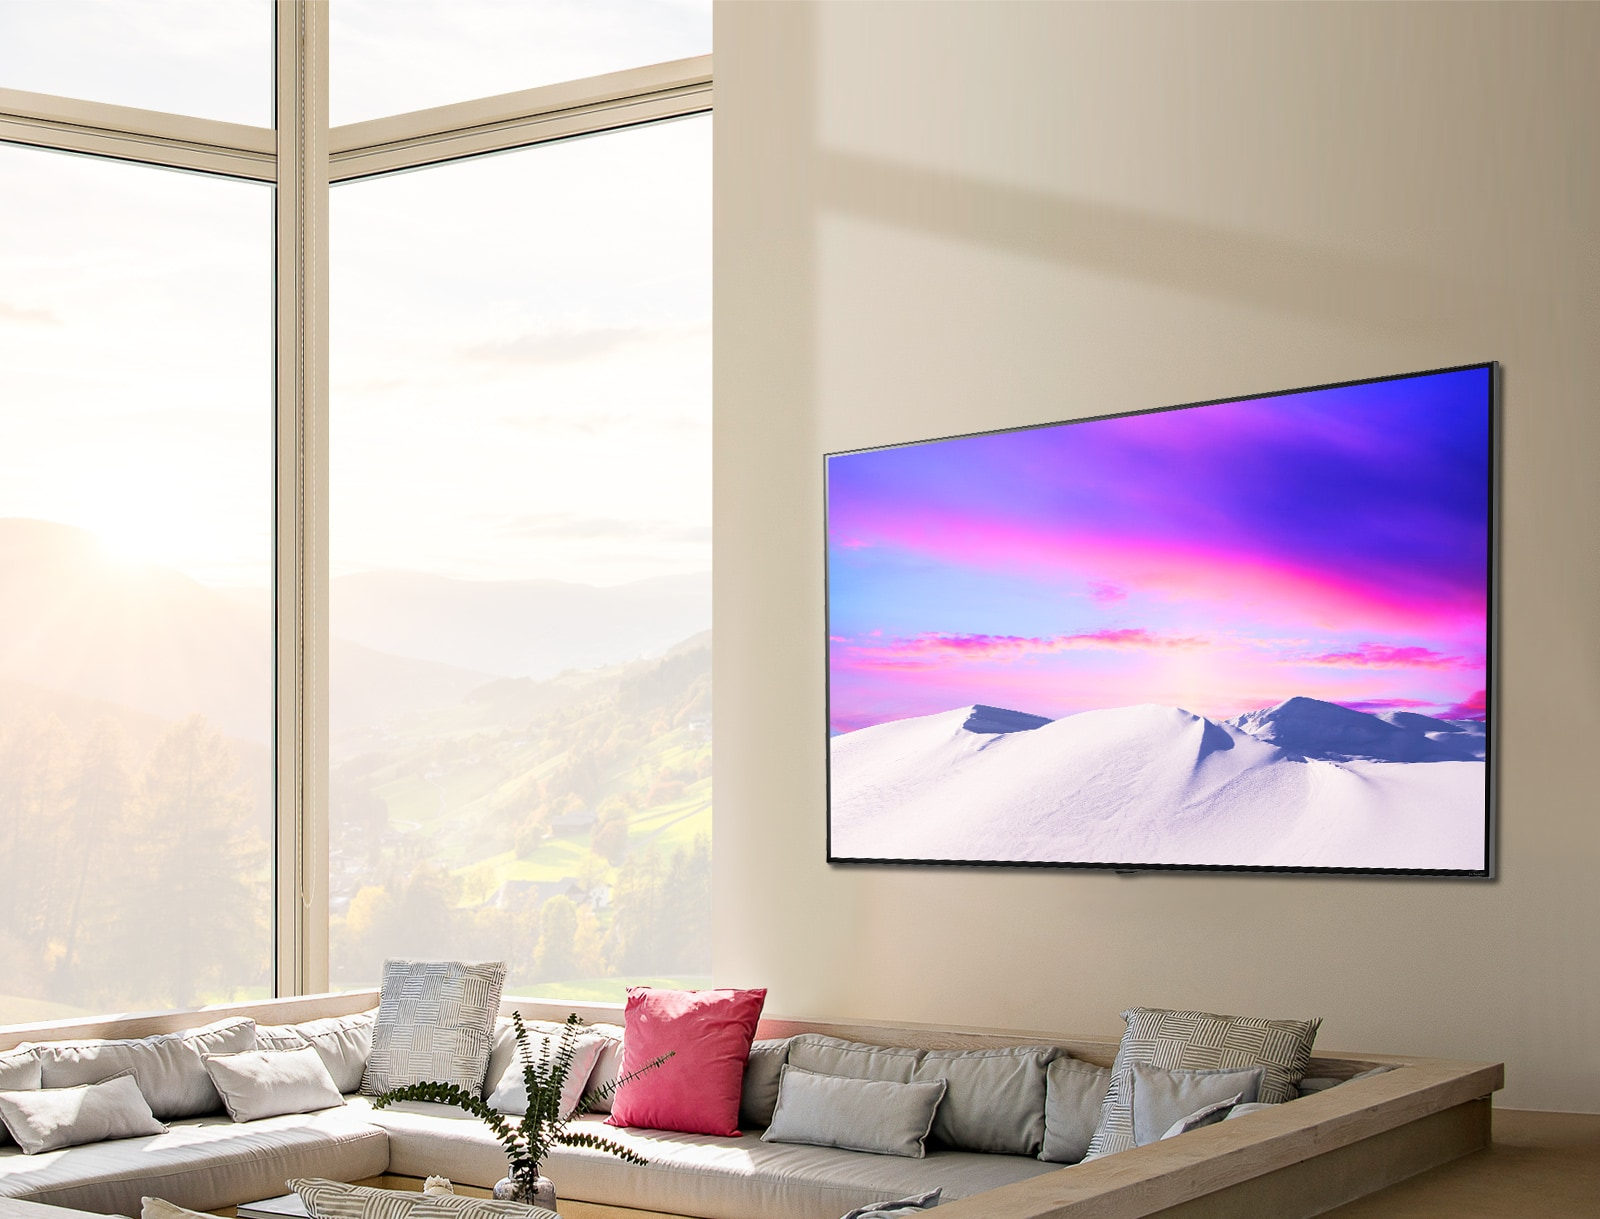 LG NanoCell TV screen hung on wall depicting a magnificent landscape displayed accurately from various angles